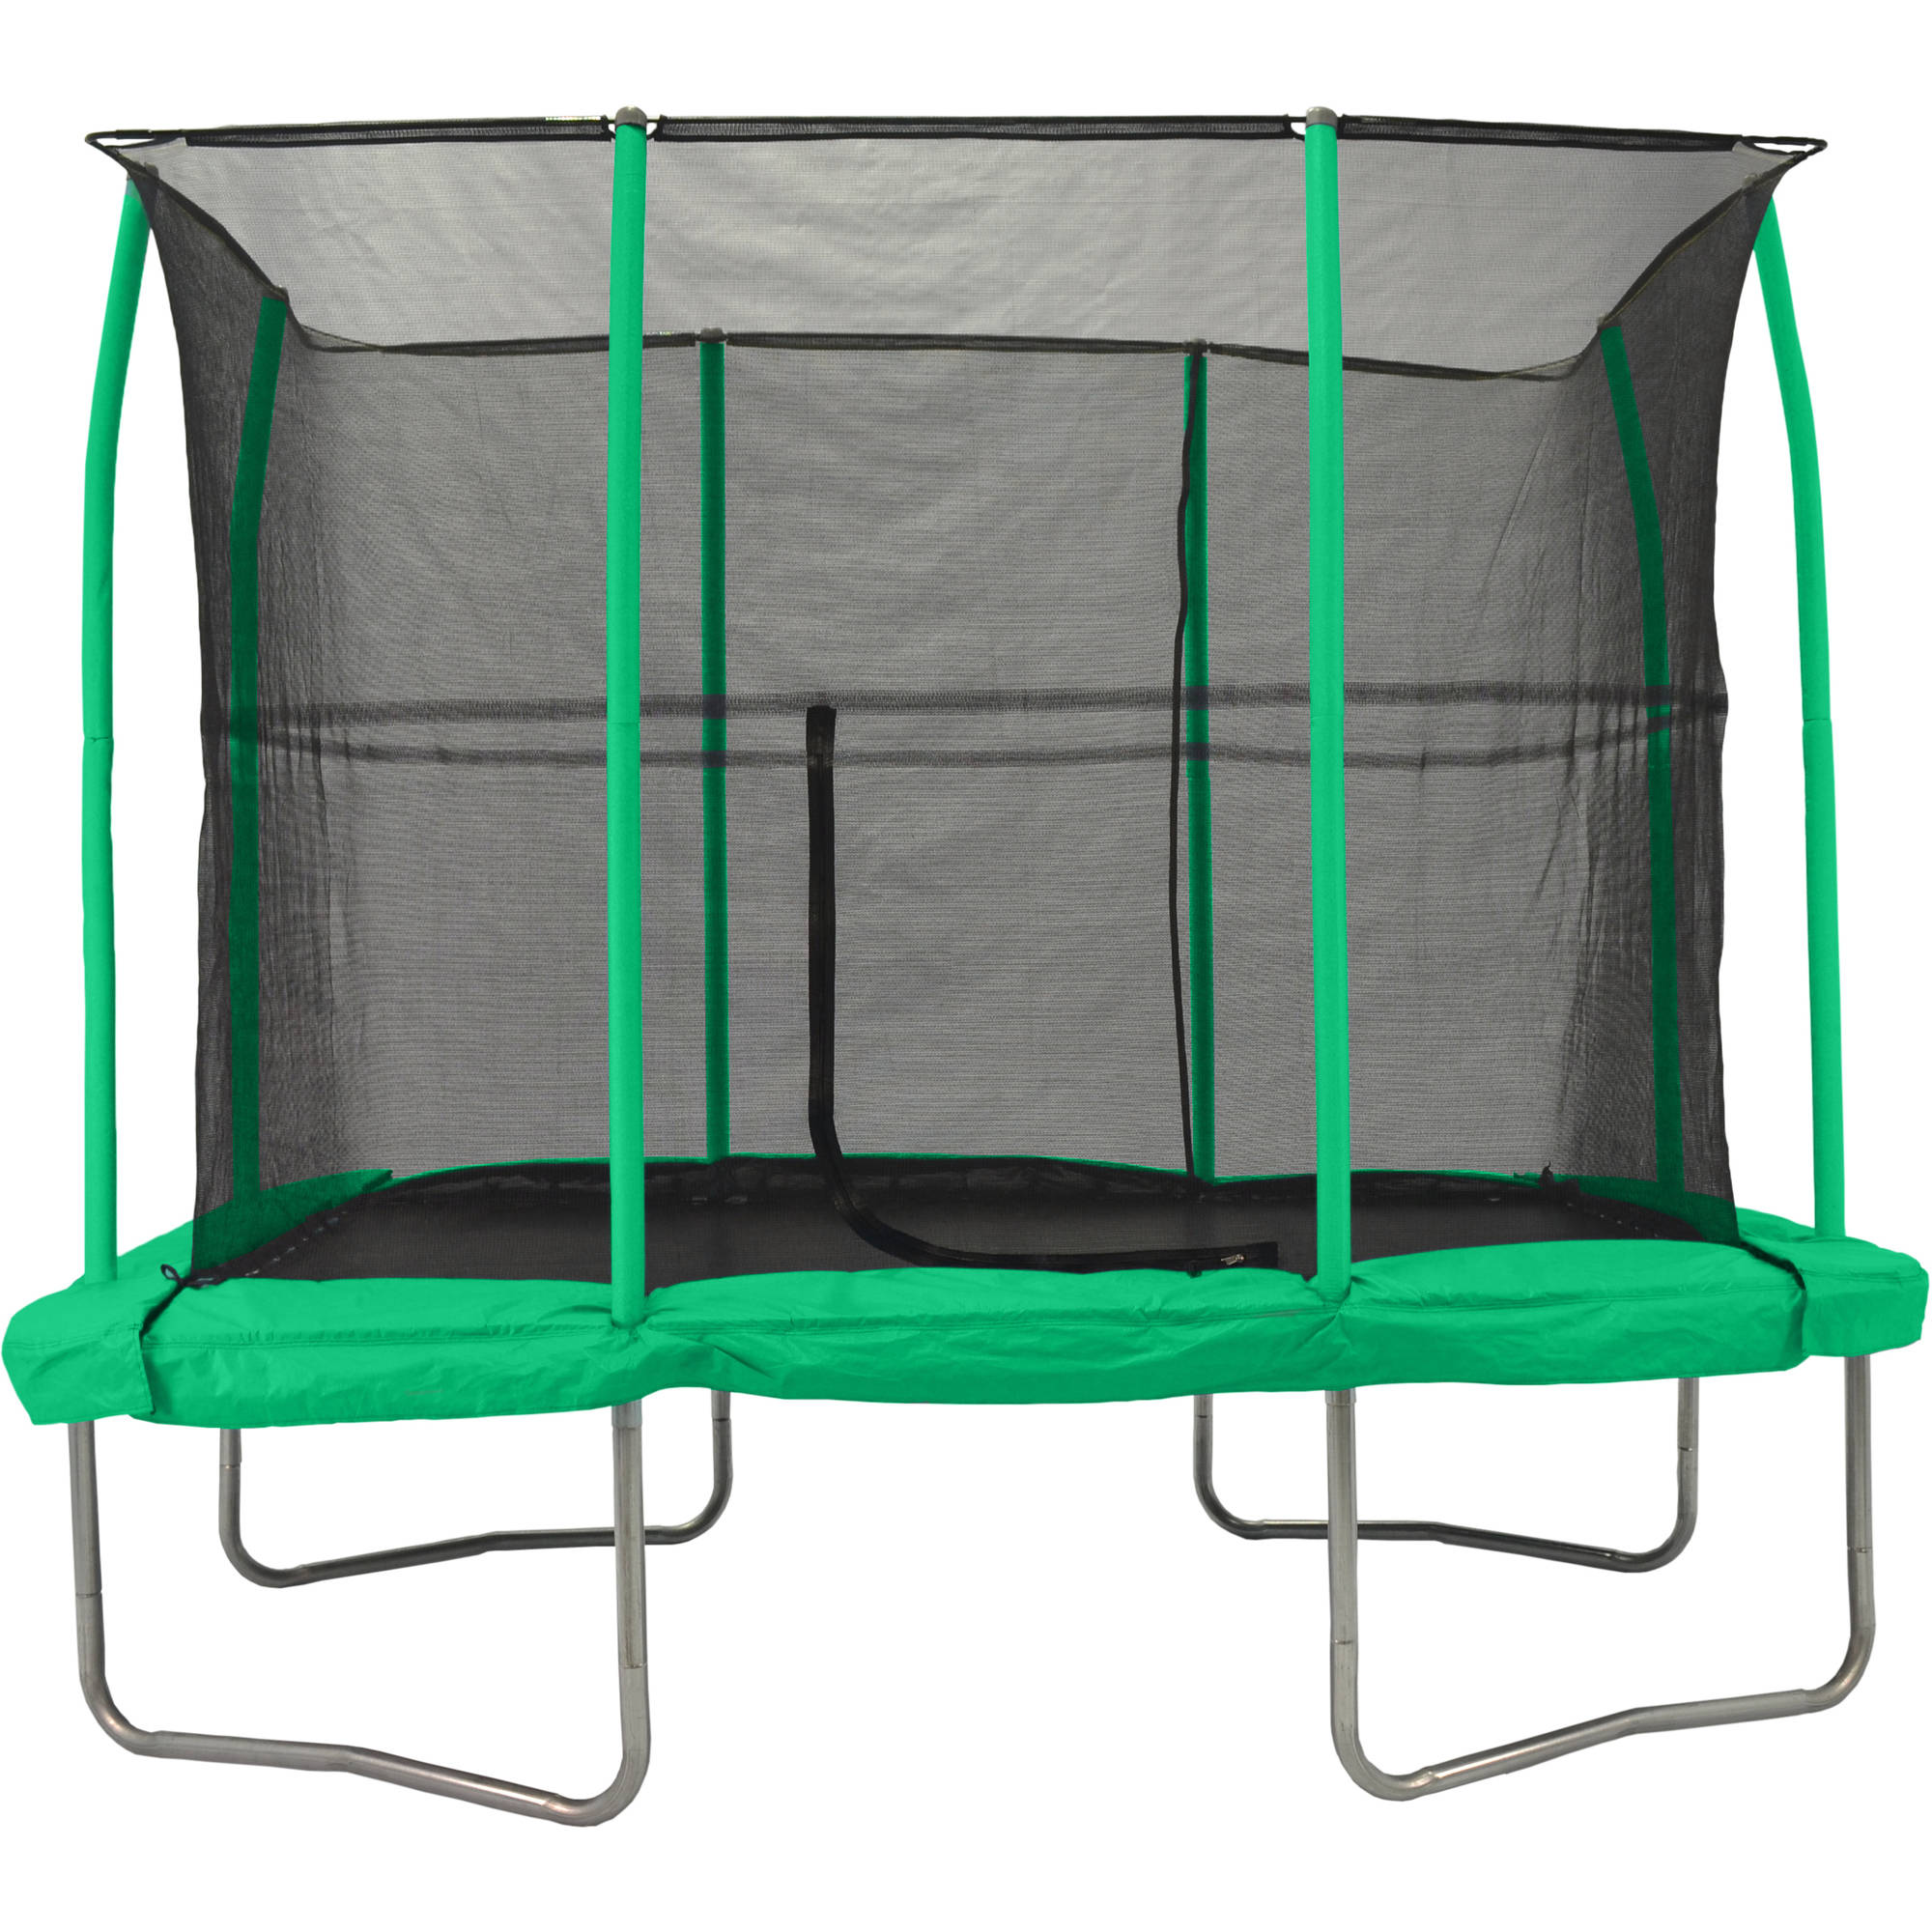 Jumpking 7 X 10 Rectangular Trampoline With Green Pad